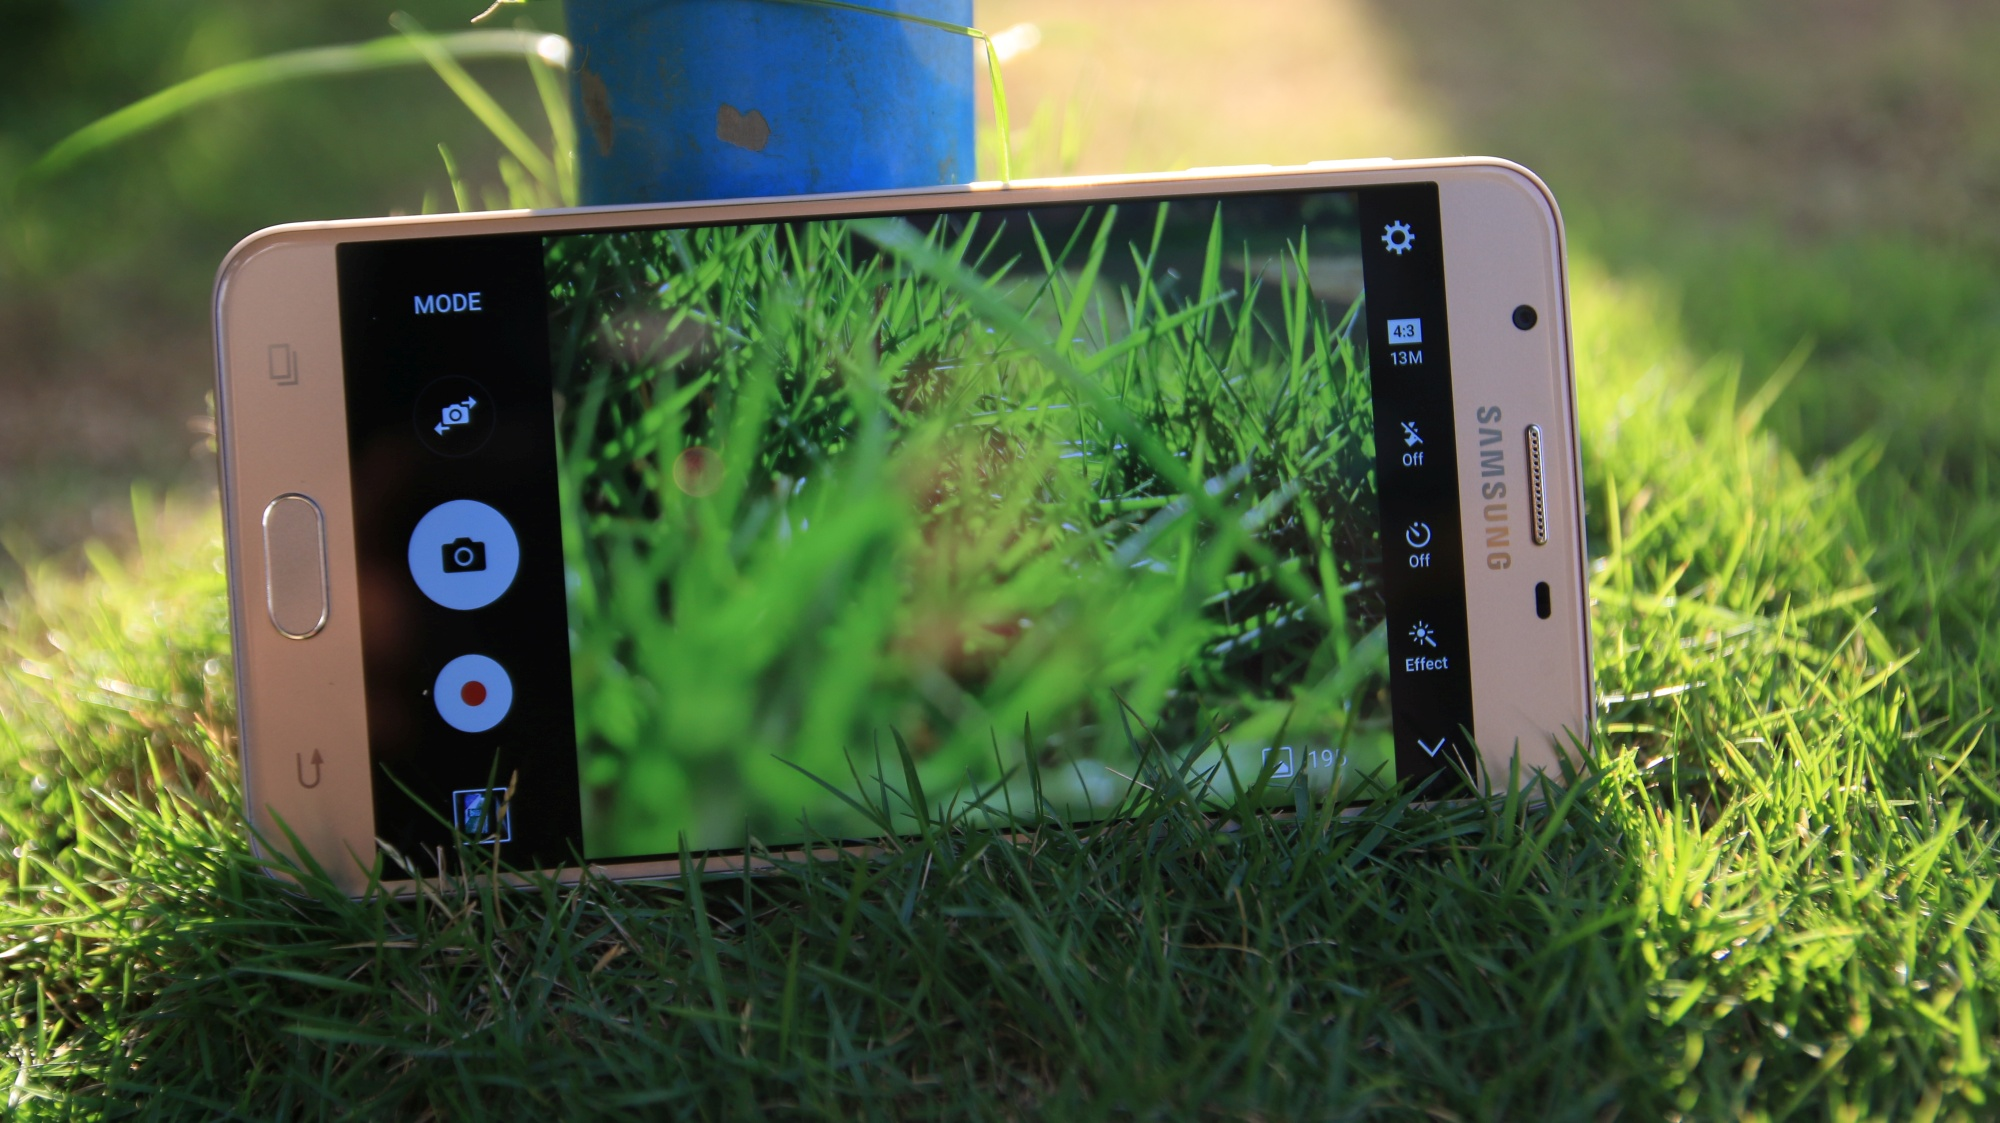 Galaxy J7 Prime review: Samsung's budget lineup takes major